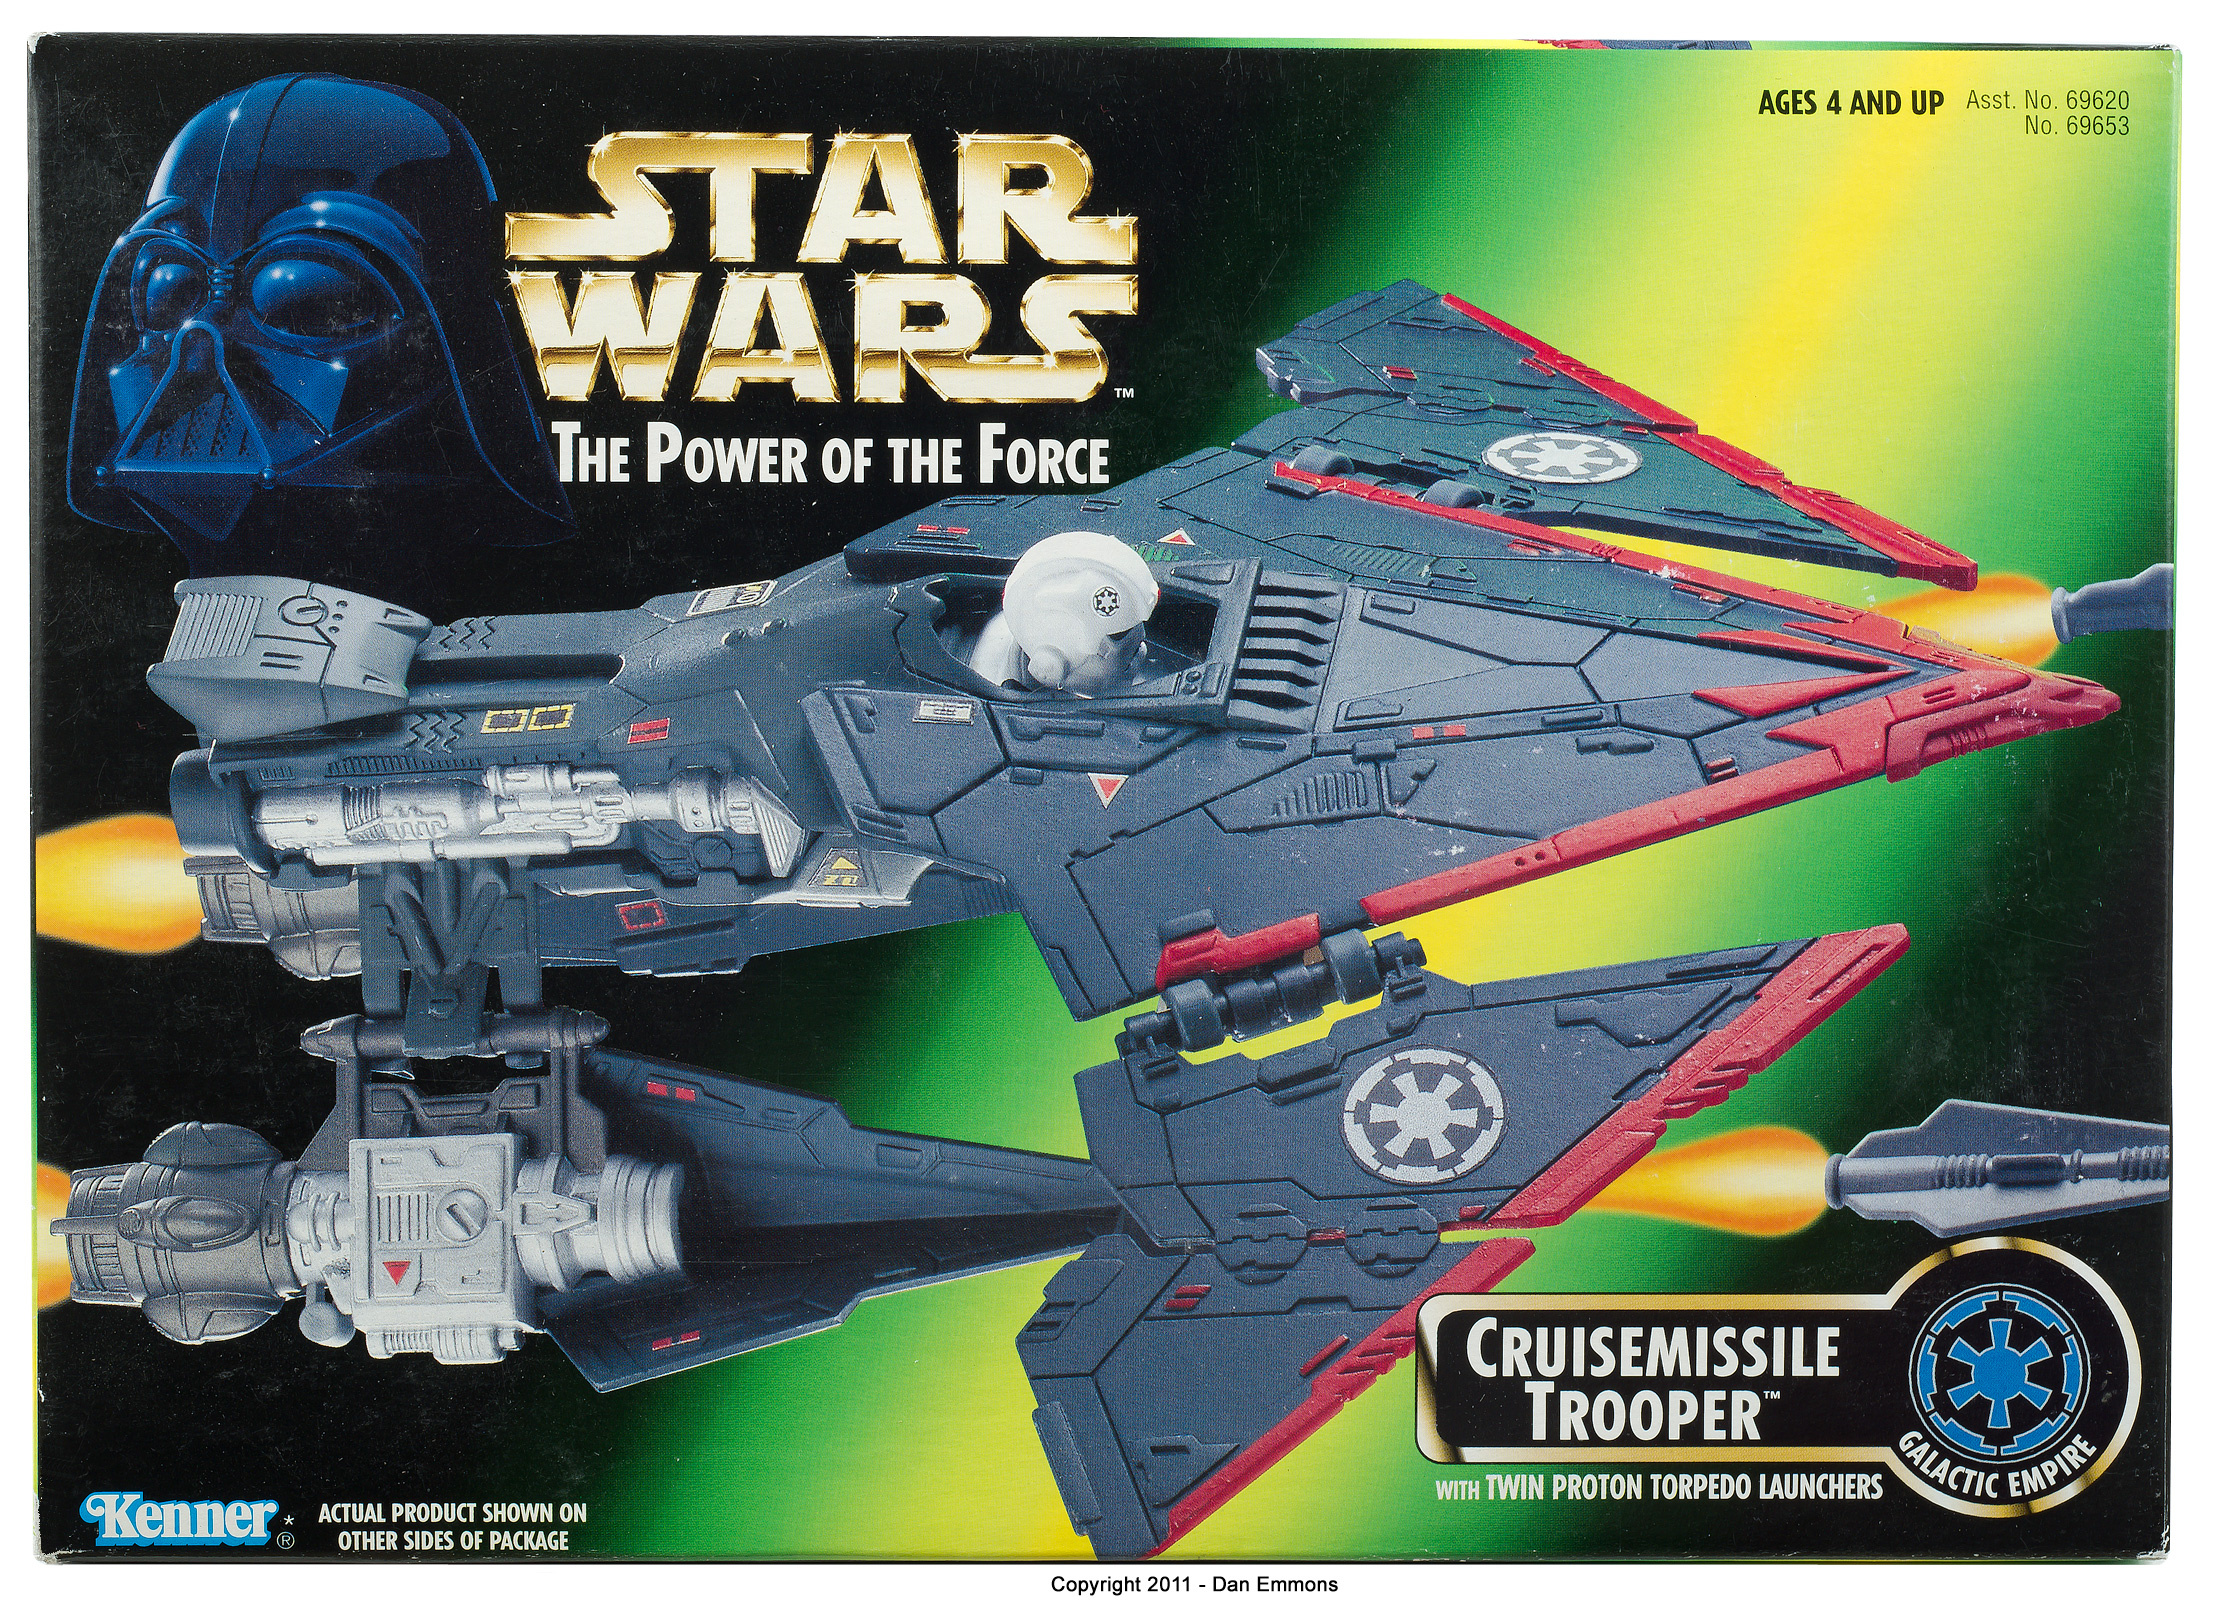 power-of-the-force-2-cruisemissile-trooper.jpg